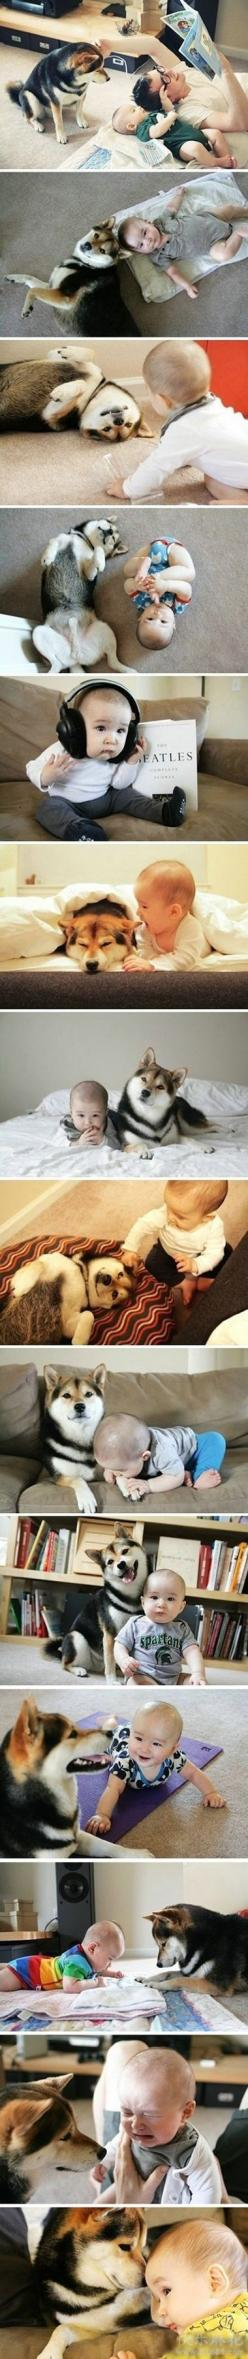 Oh my... I can't get over how adorable this is!: Babies, Dogs, Shiba Inu, Best Friends, Sweet, Puppy, Kid, Animal